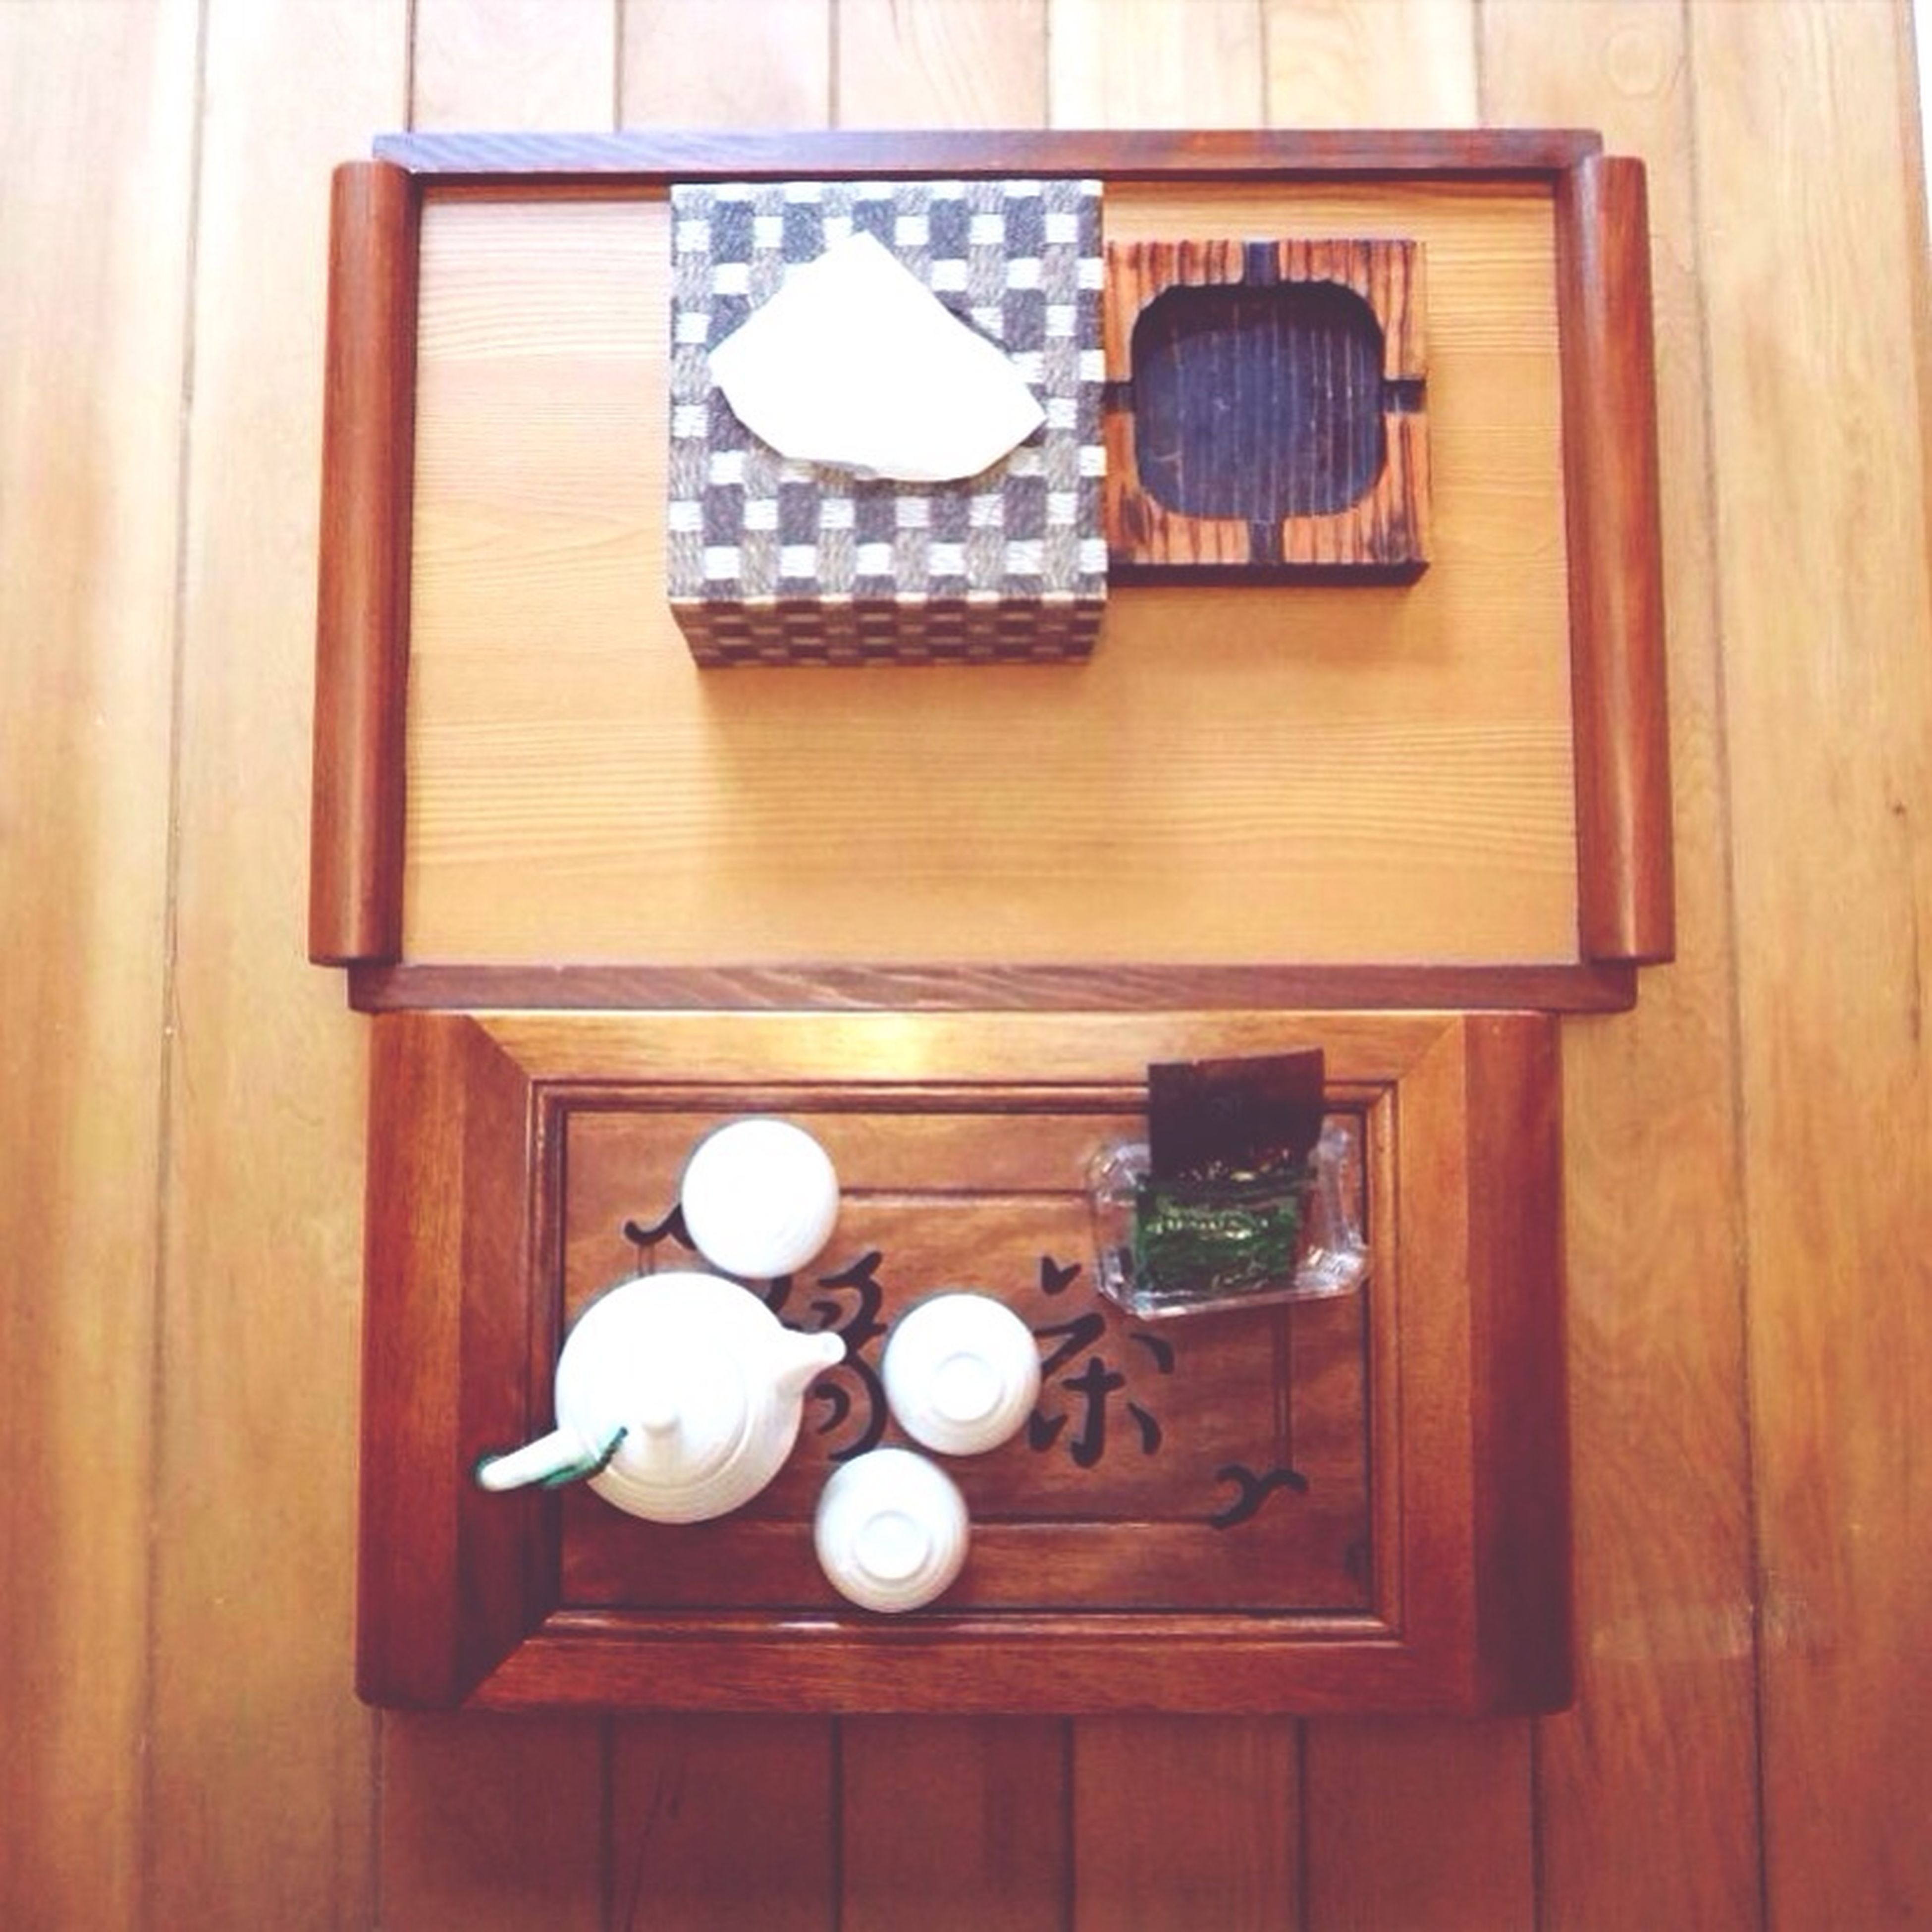 indoors, table, wood - material, still life, food and drink, directly above, high angle view, wooden, drink, plate, home interior, no people, food, coffee cup, freshness, wood, refreshment, glass - material, healthy eating, decoration